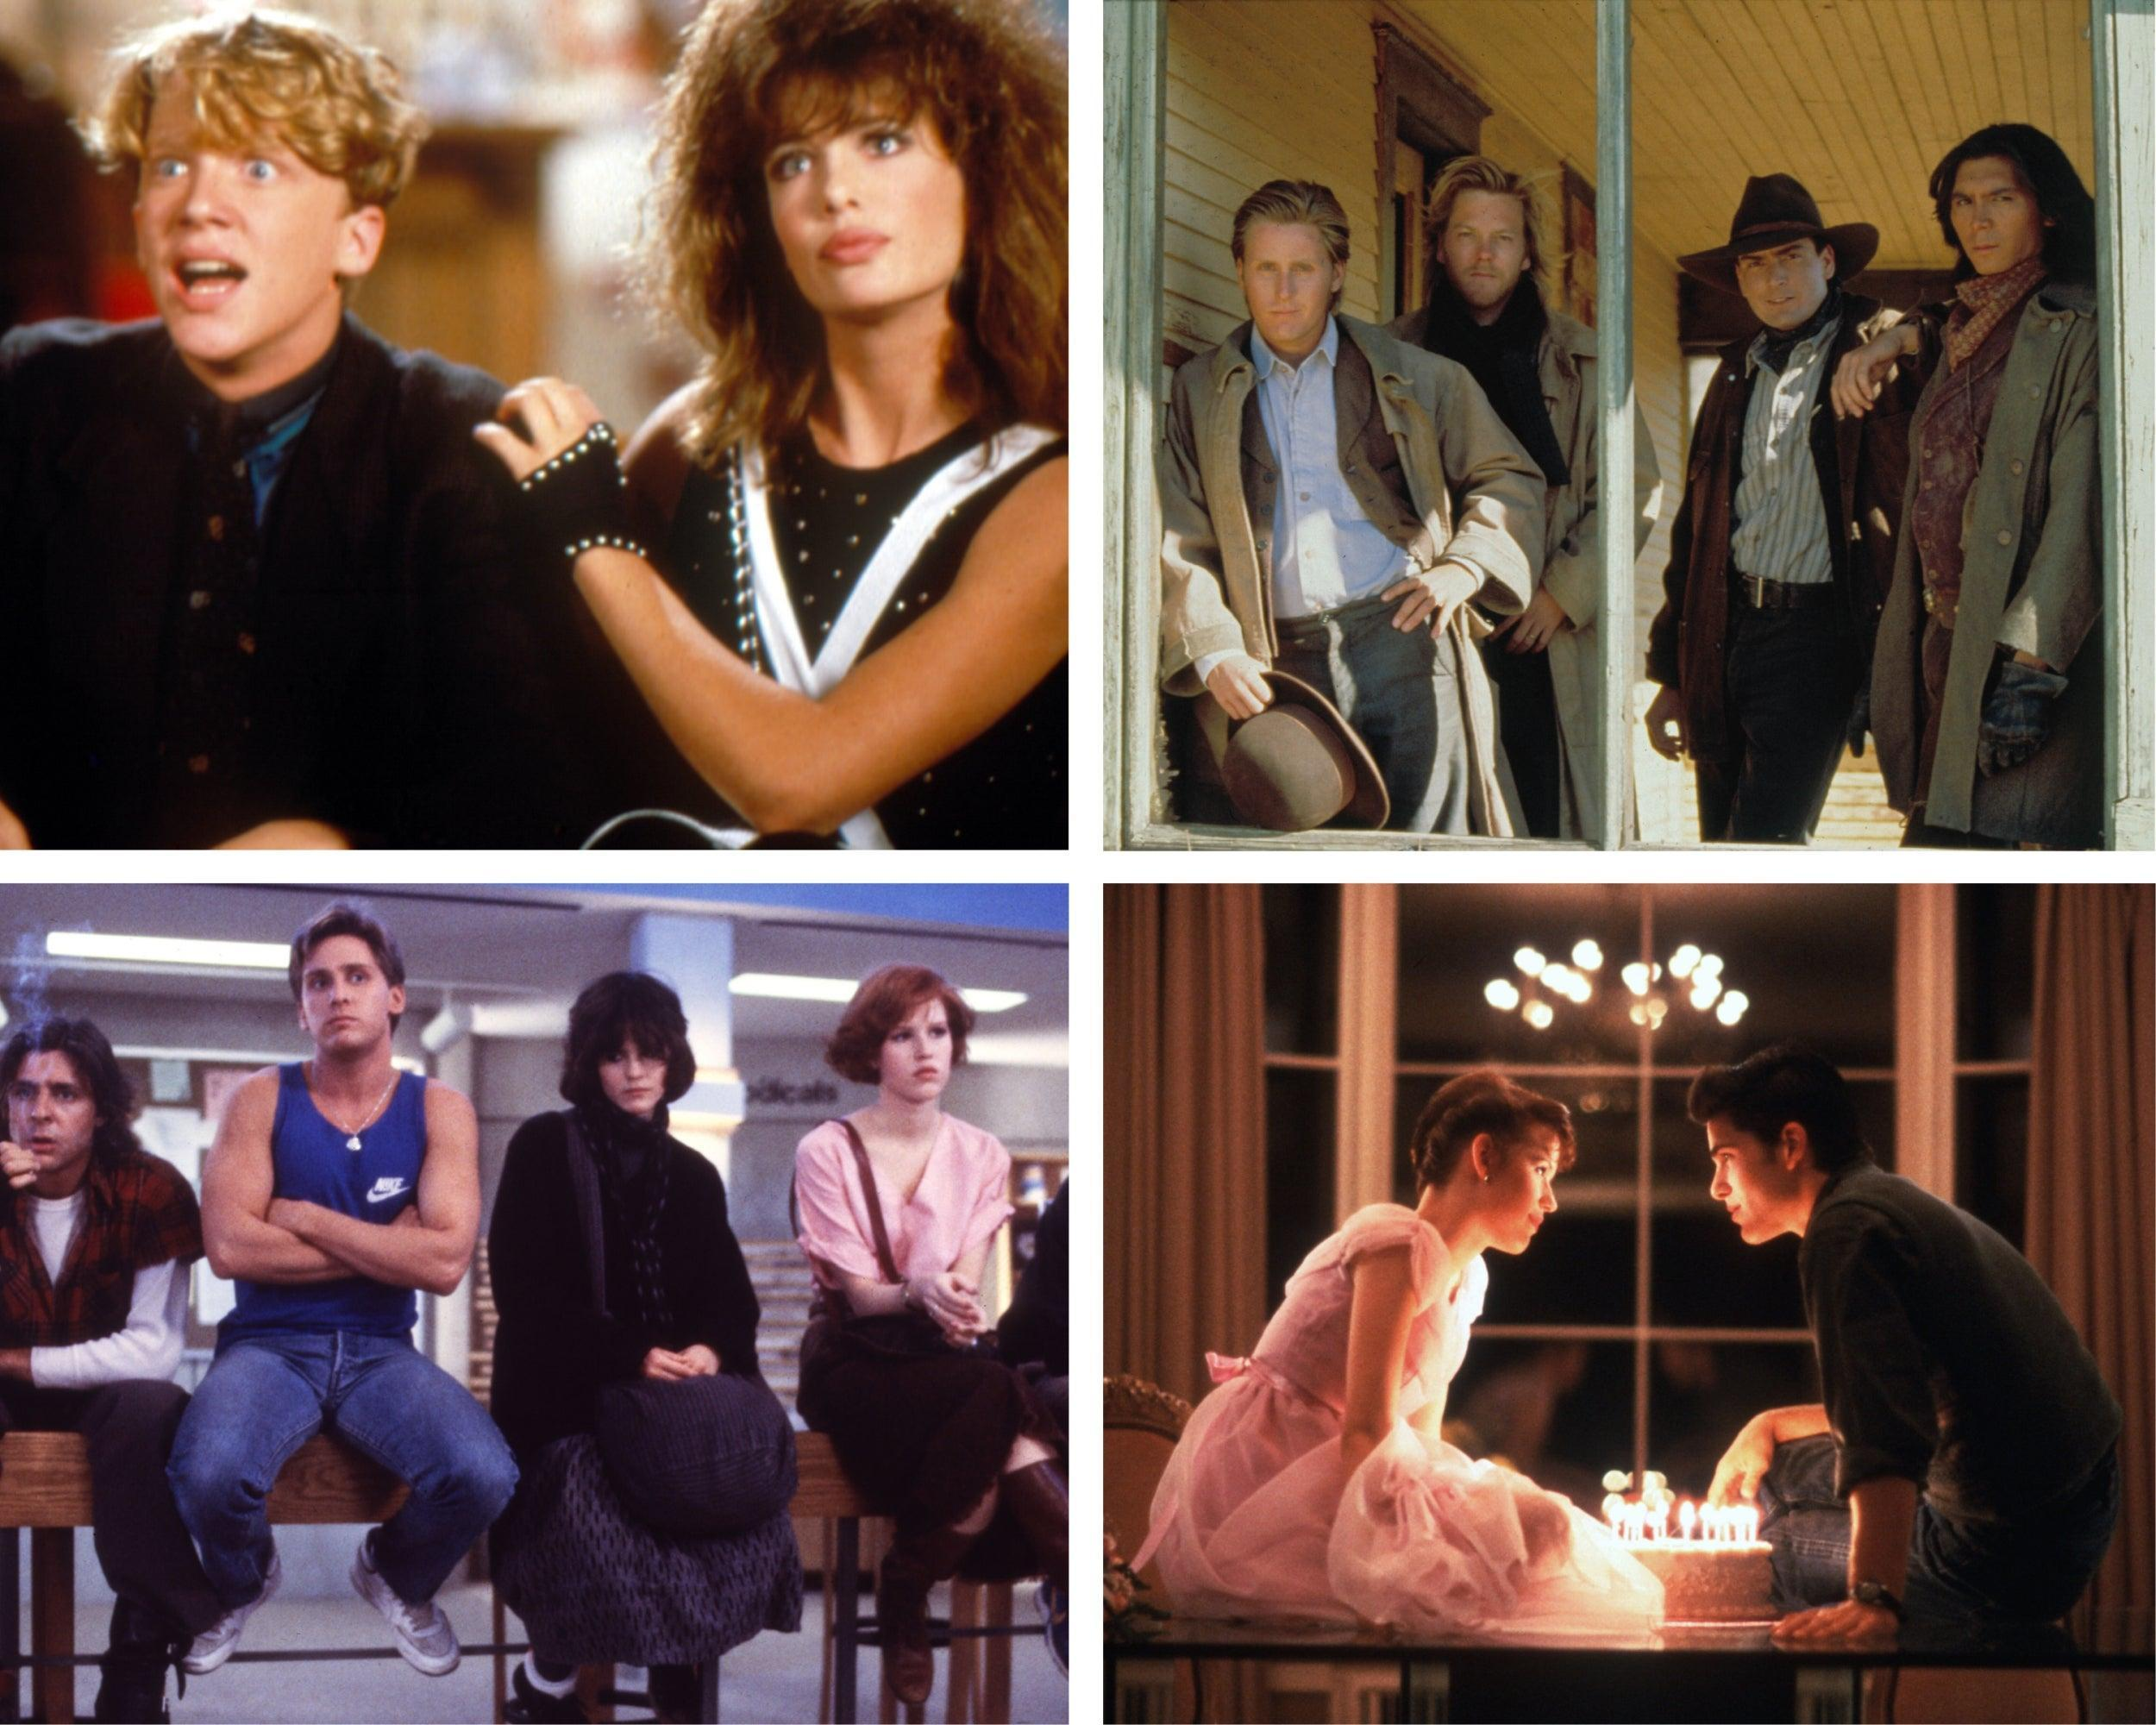 The 10 greatest Brat Pack films, from The Breakfast Club to Sixteen Candles